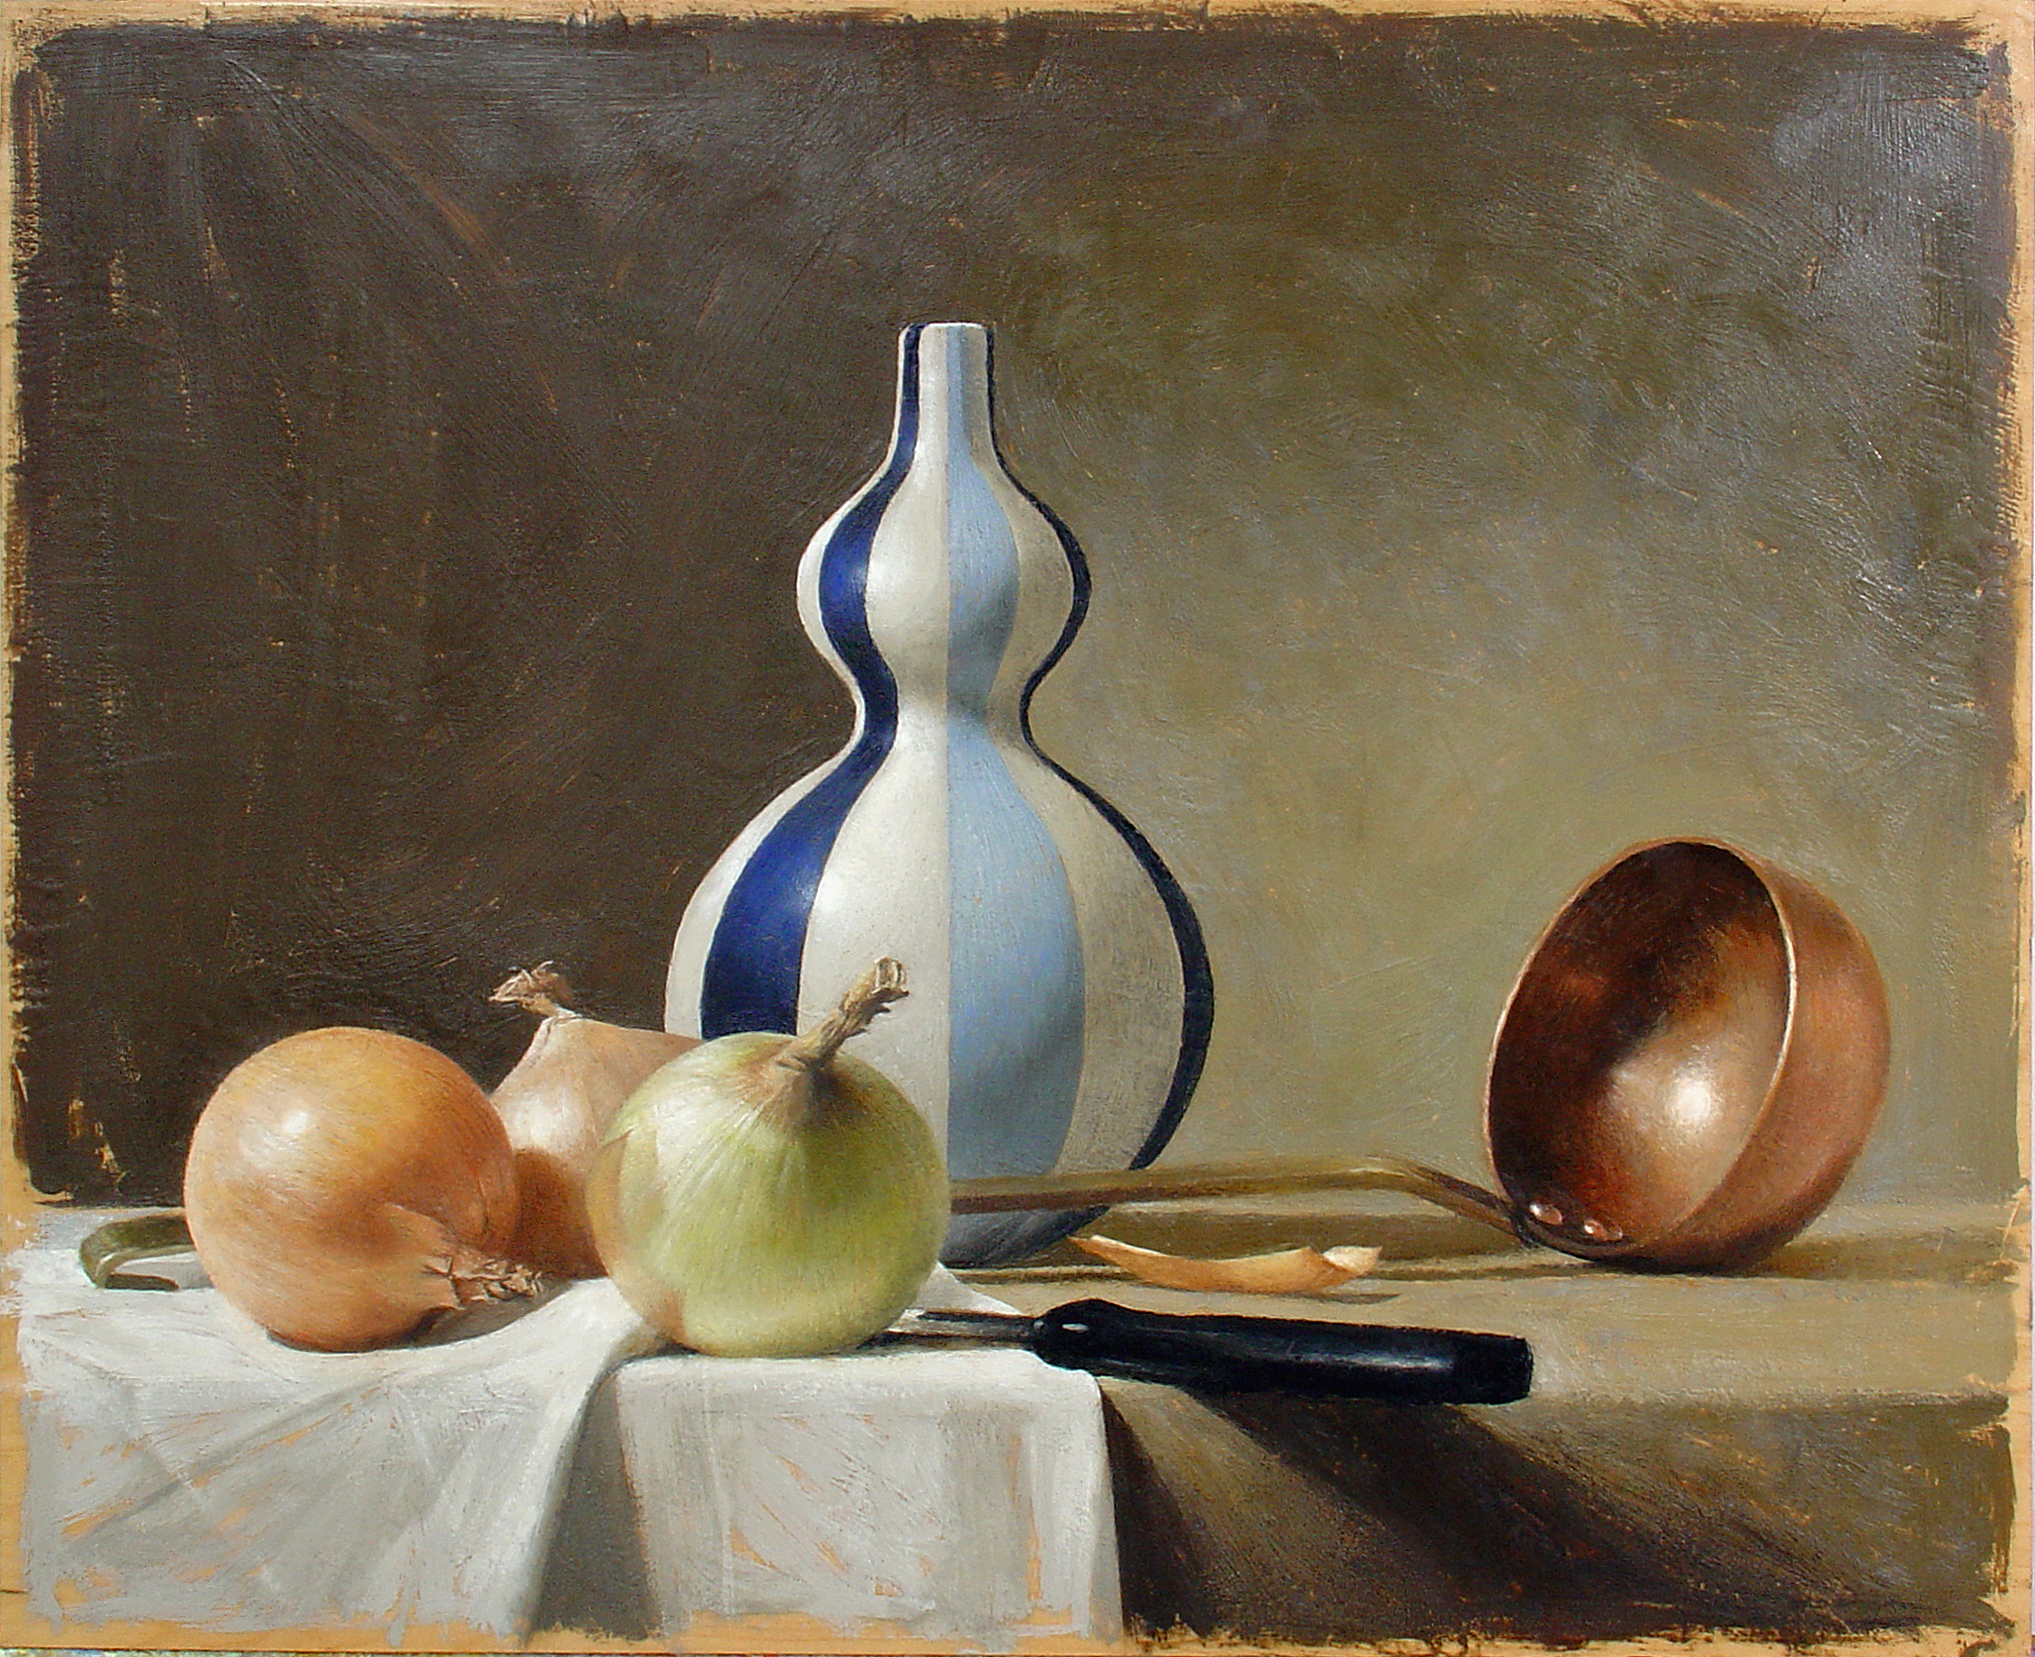 """Still Life with Blue and White Vase, encaustic beeswax on wood panel, 16"""" x 20"""", 2003"""